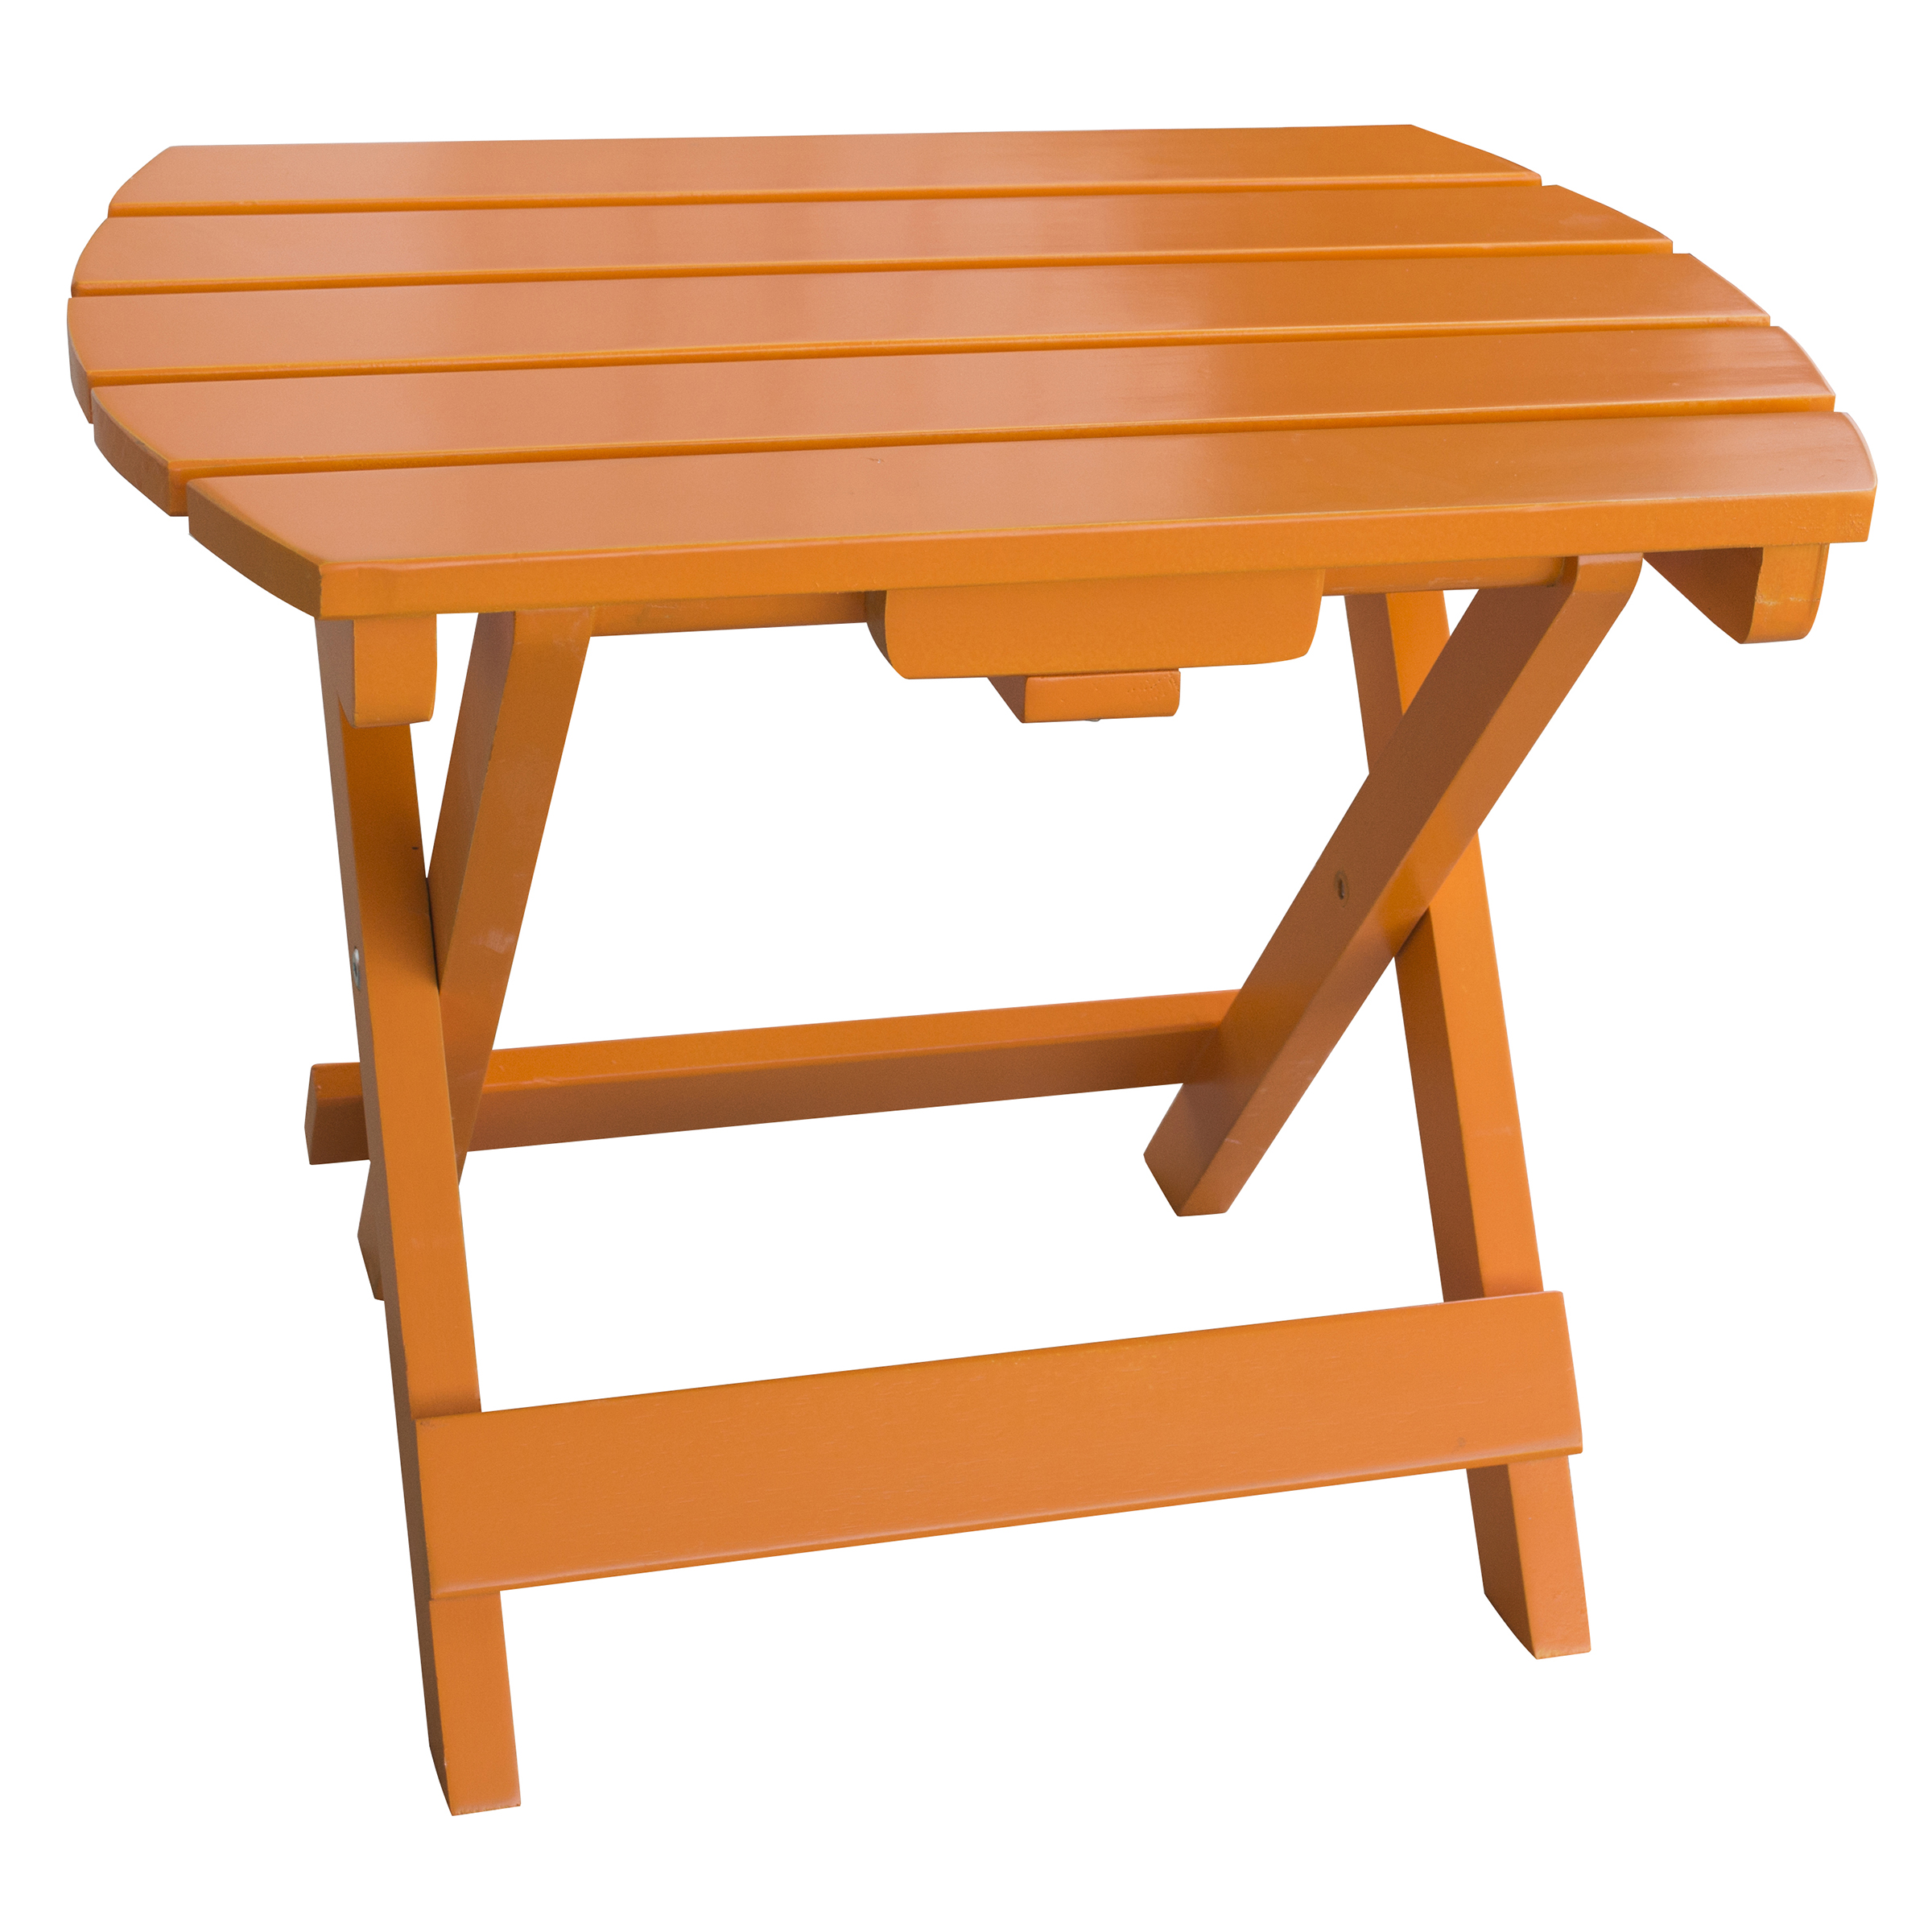 Solid Wood Adirondack Folding Side Table with Painted Finish - Tangerine